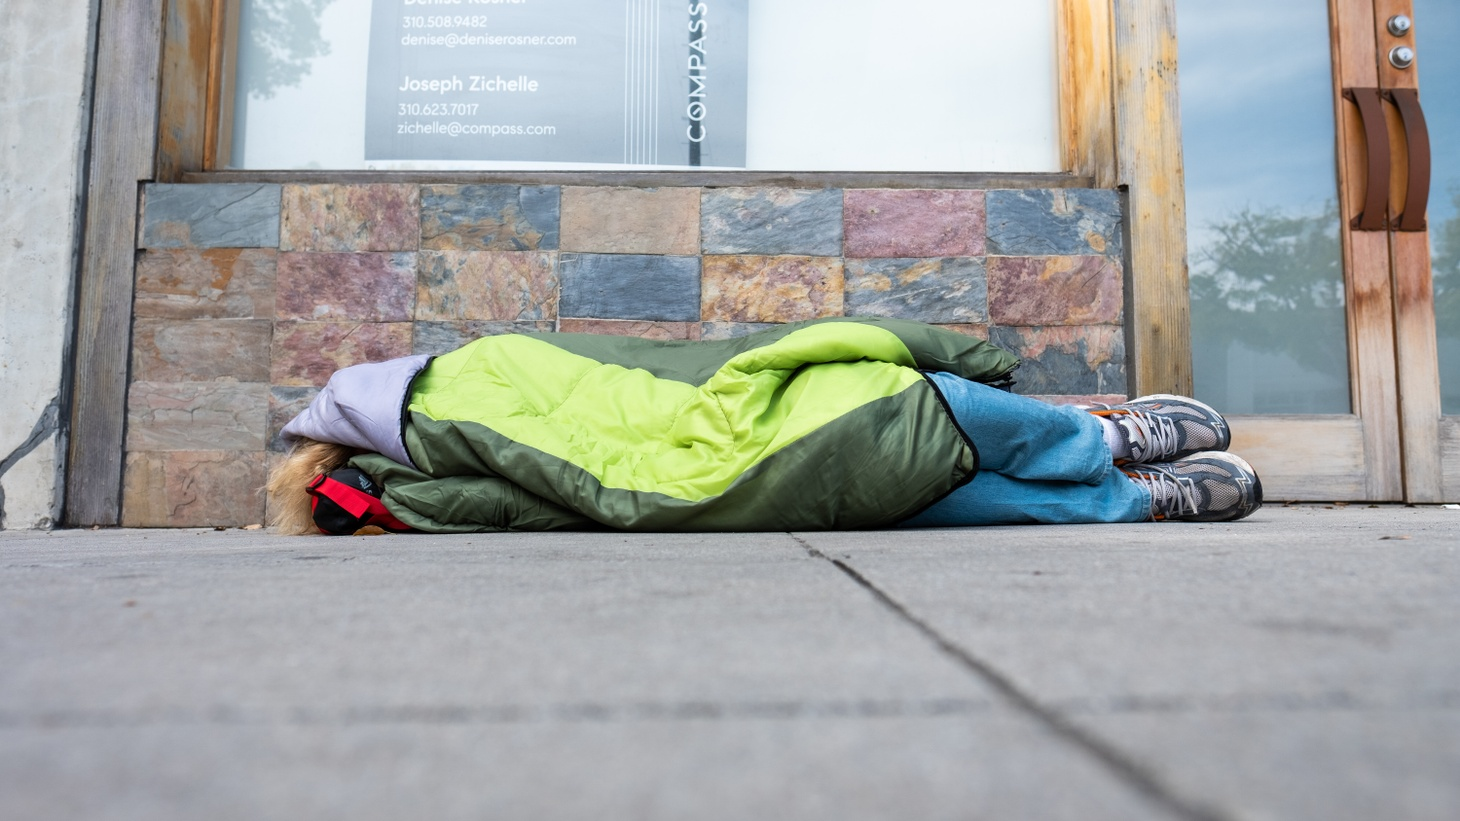 A person sleeping on Main St. in Culver City, March 2020. LA County's goal is to house 15,000 homeless people in hotel rooms during the coronavirus pandemic.